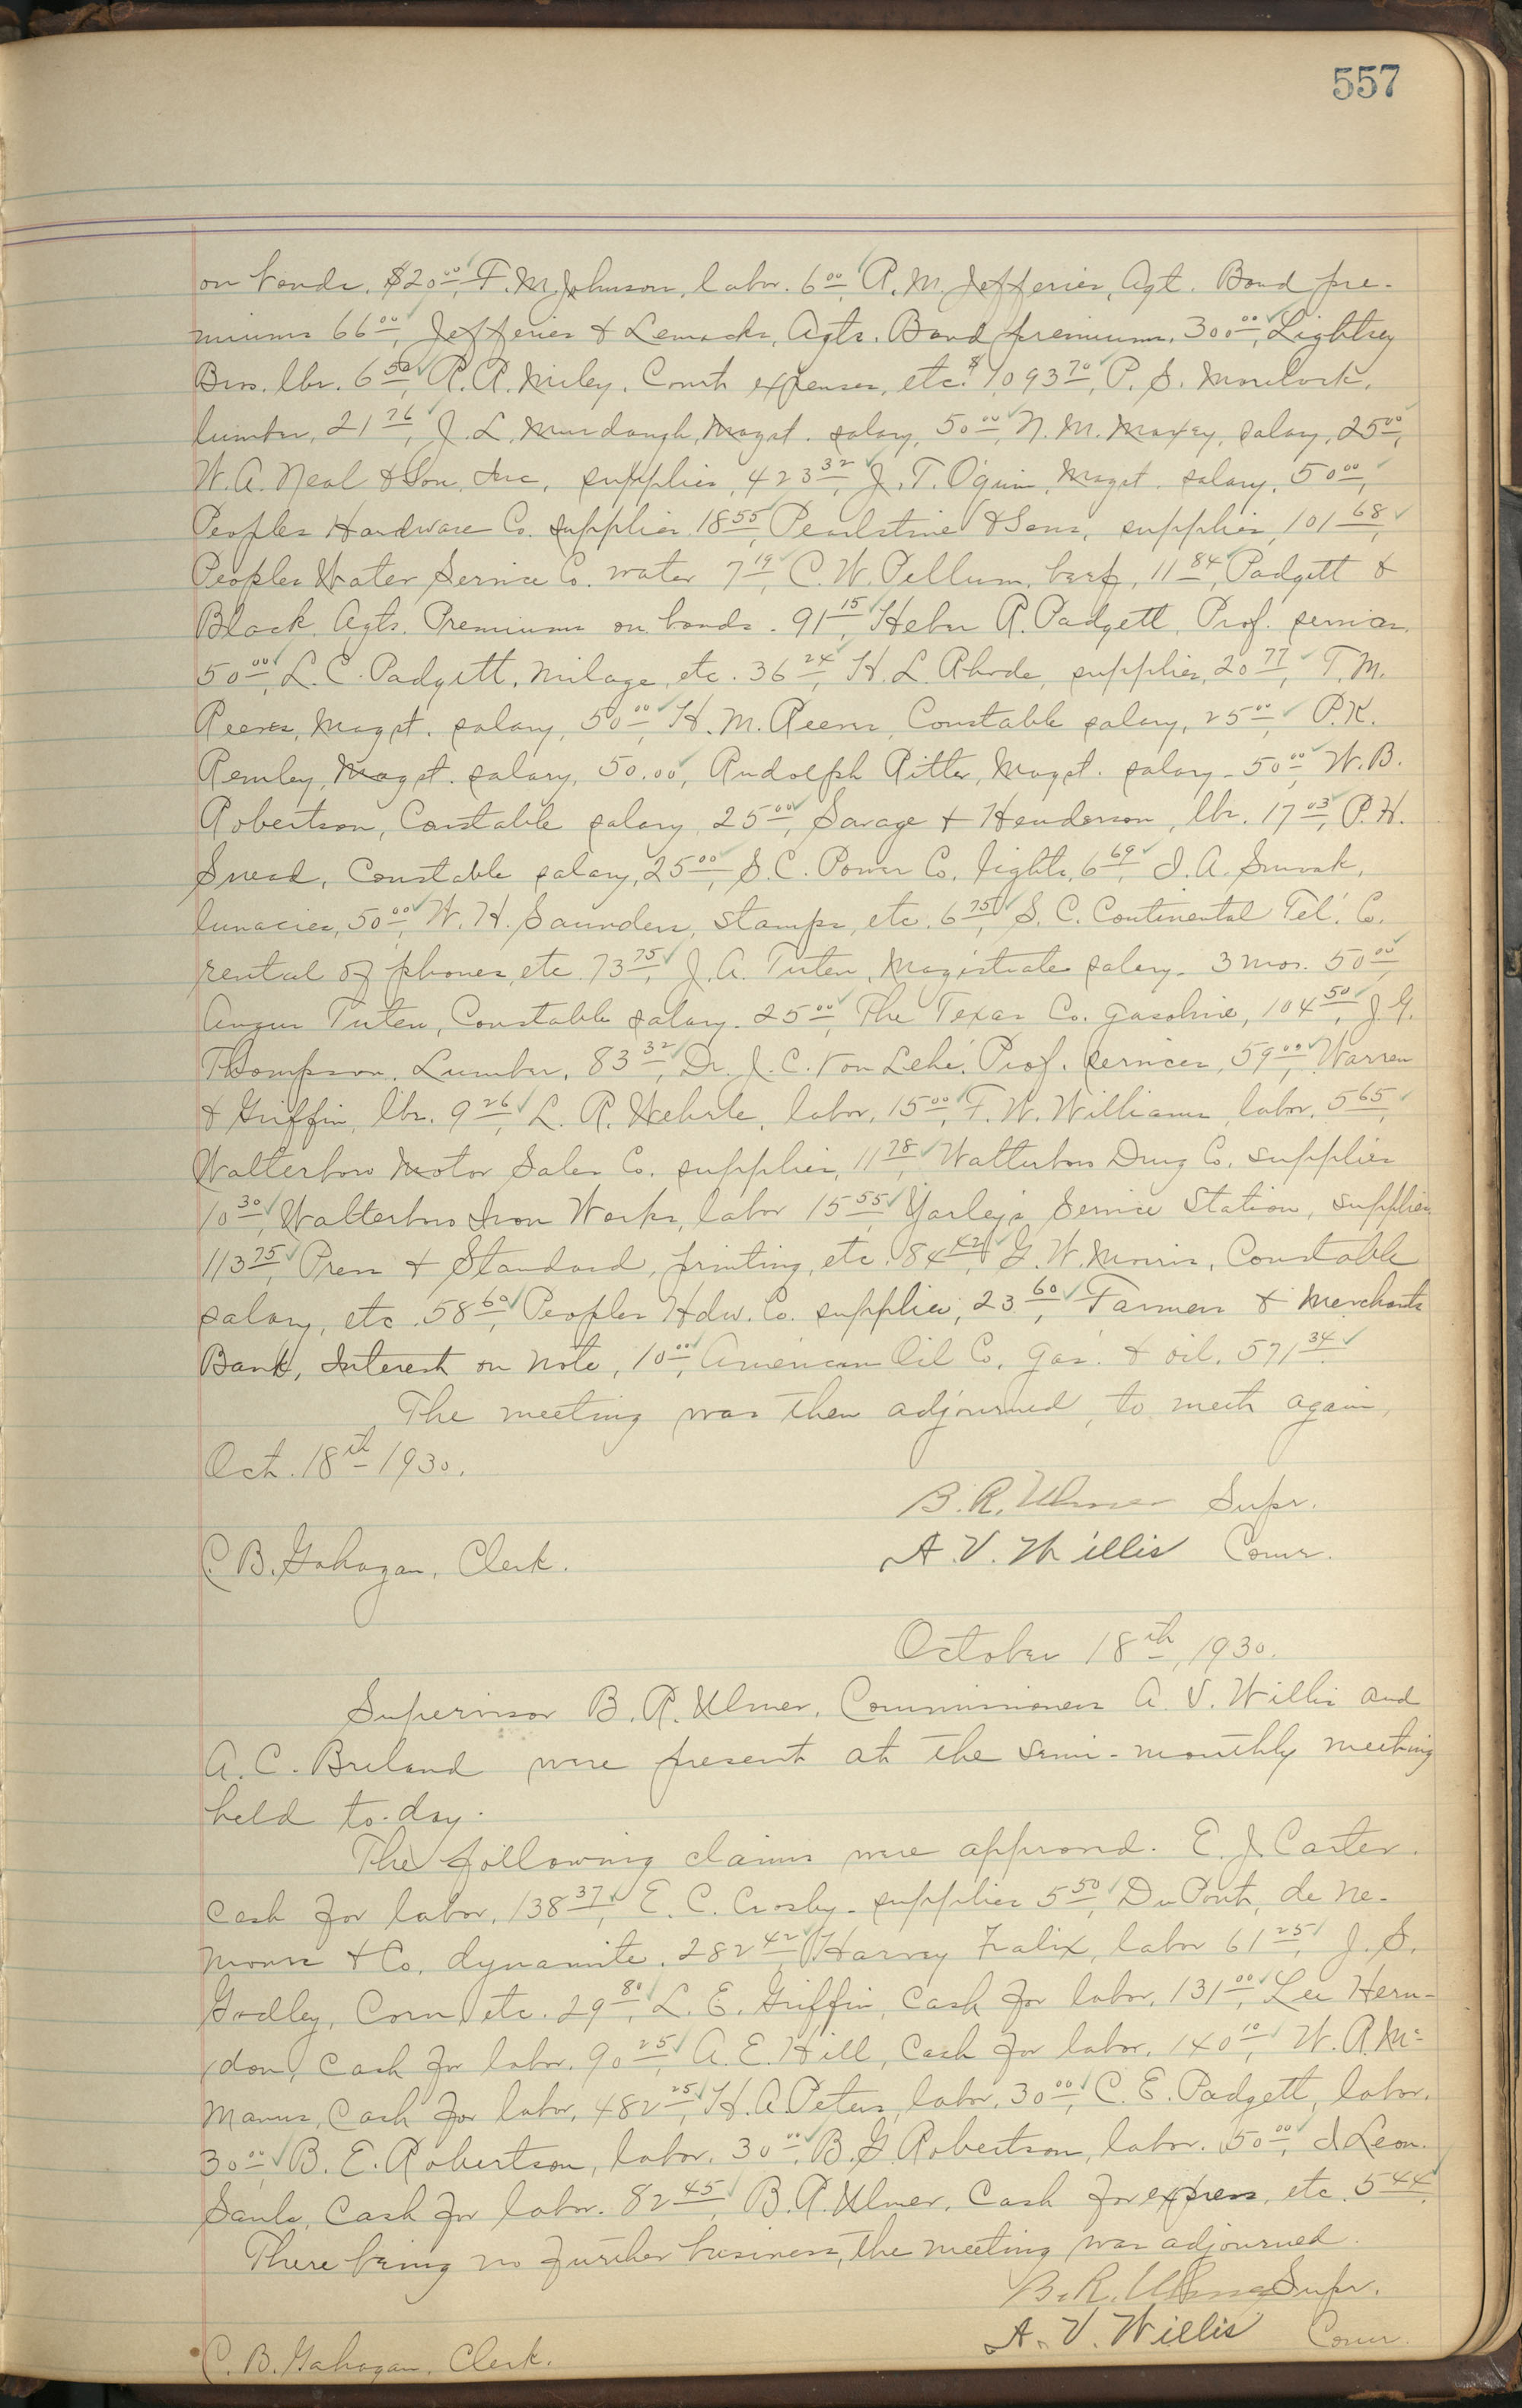 Colleton County Highway Commission Ledger, Page 557